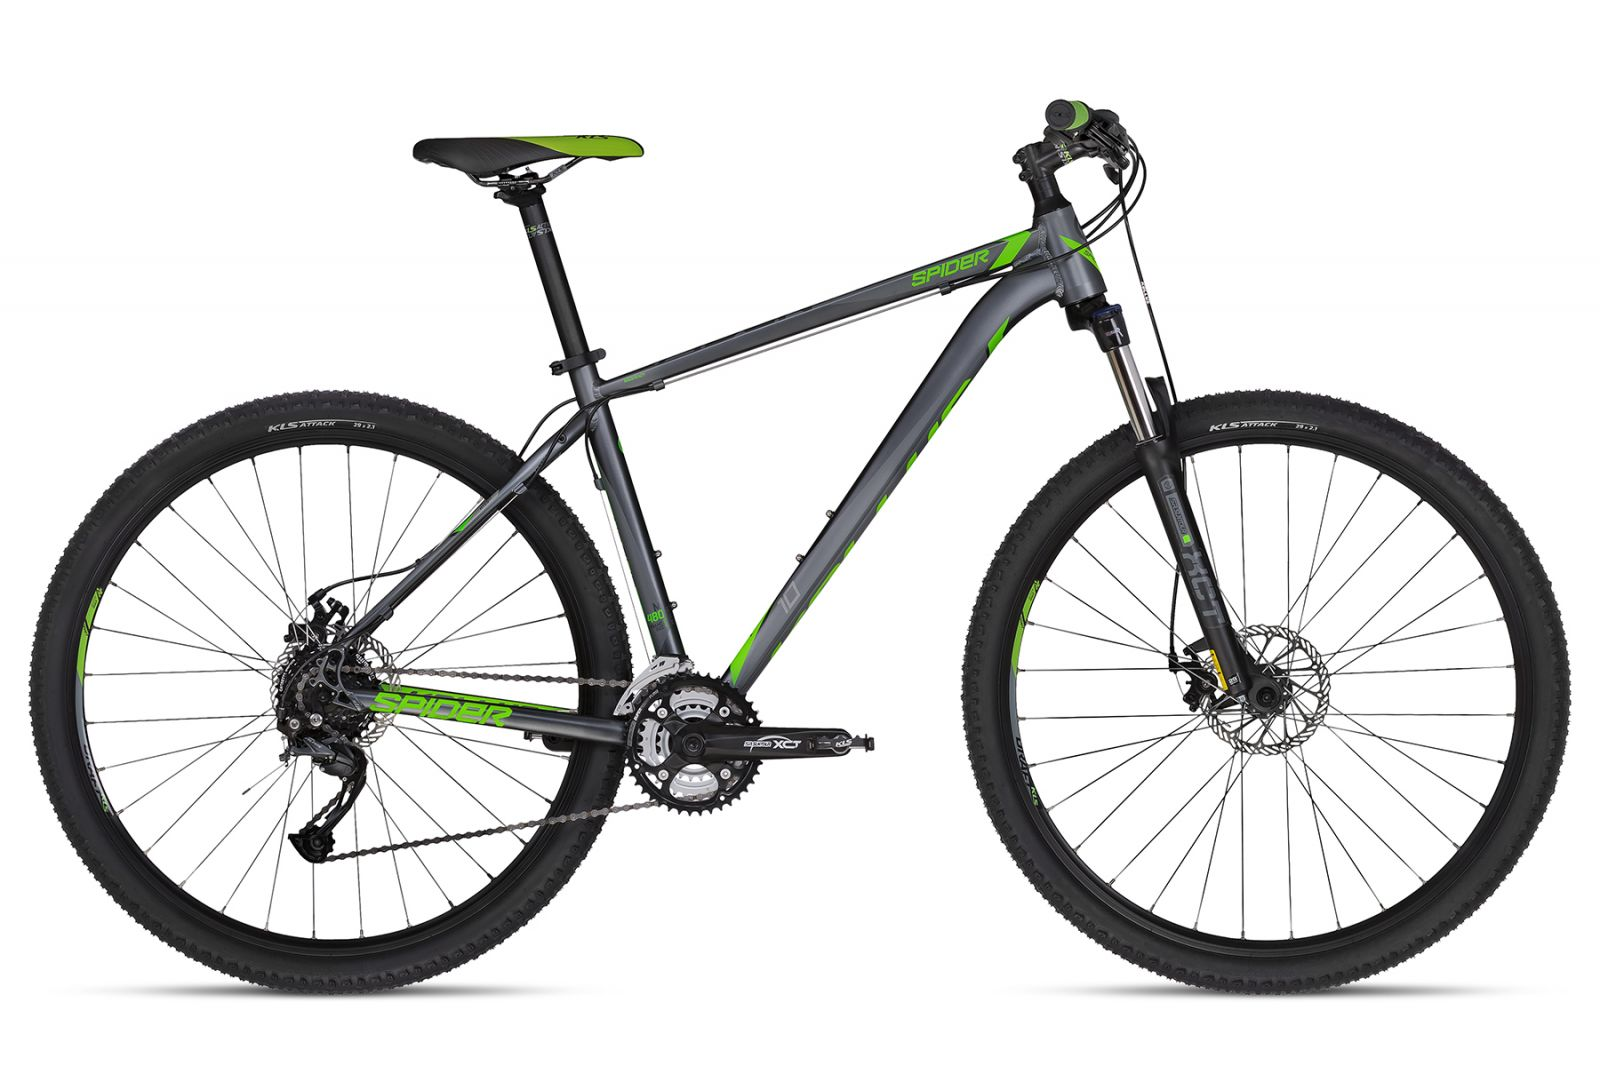 KELLYS Spider 10 Green 430 29 S 2018 Kellys Bicycles